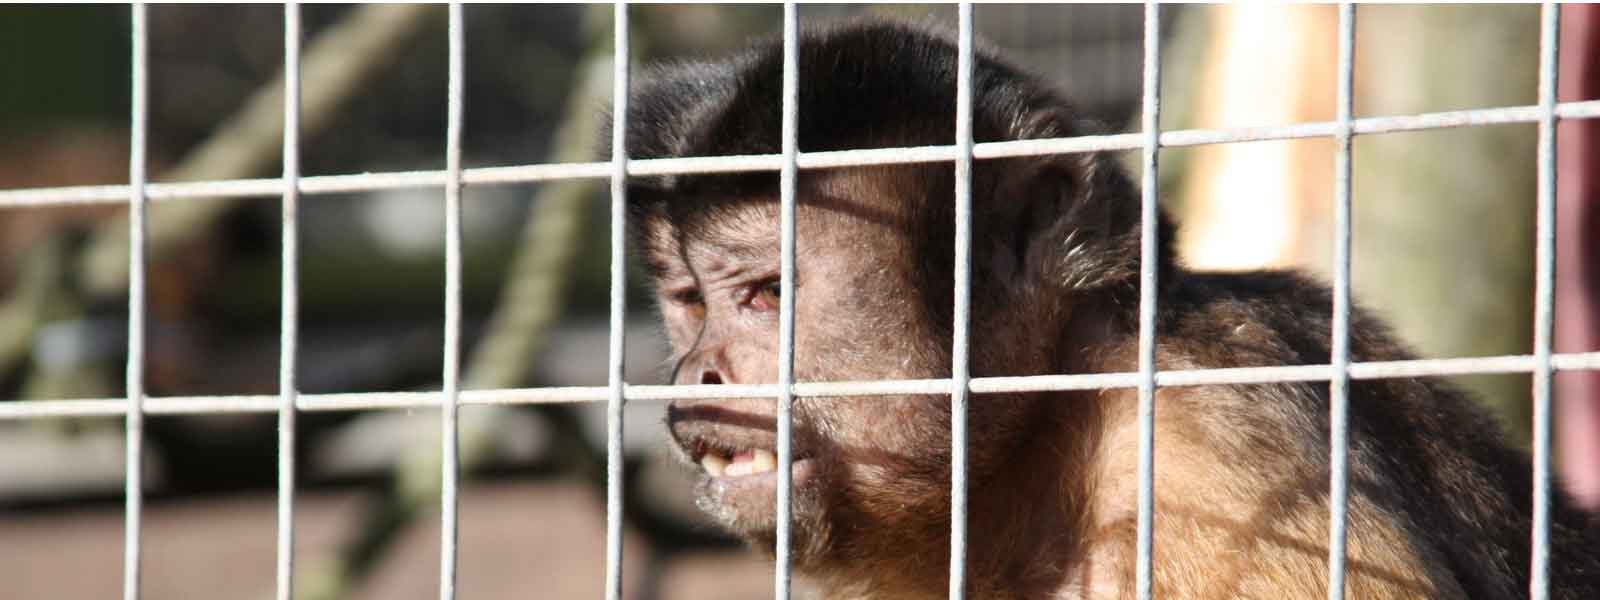 Disappointing debate fails to protect primates in UK